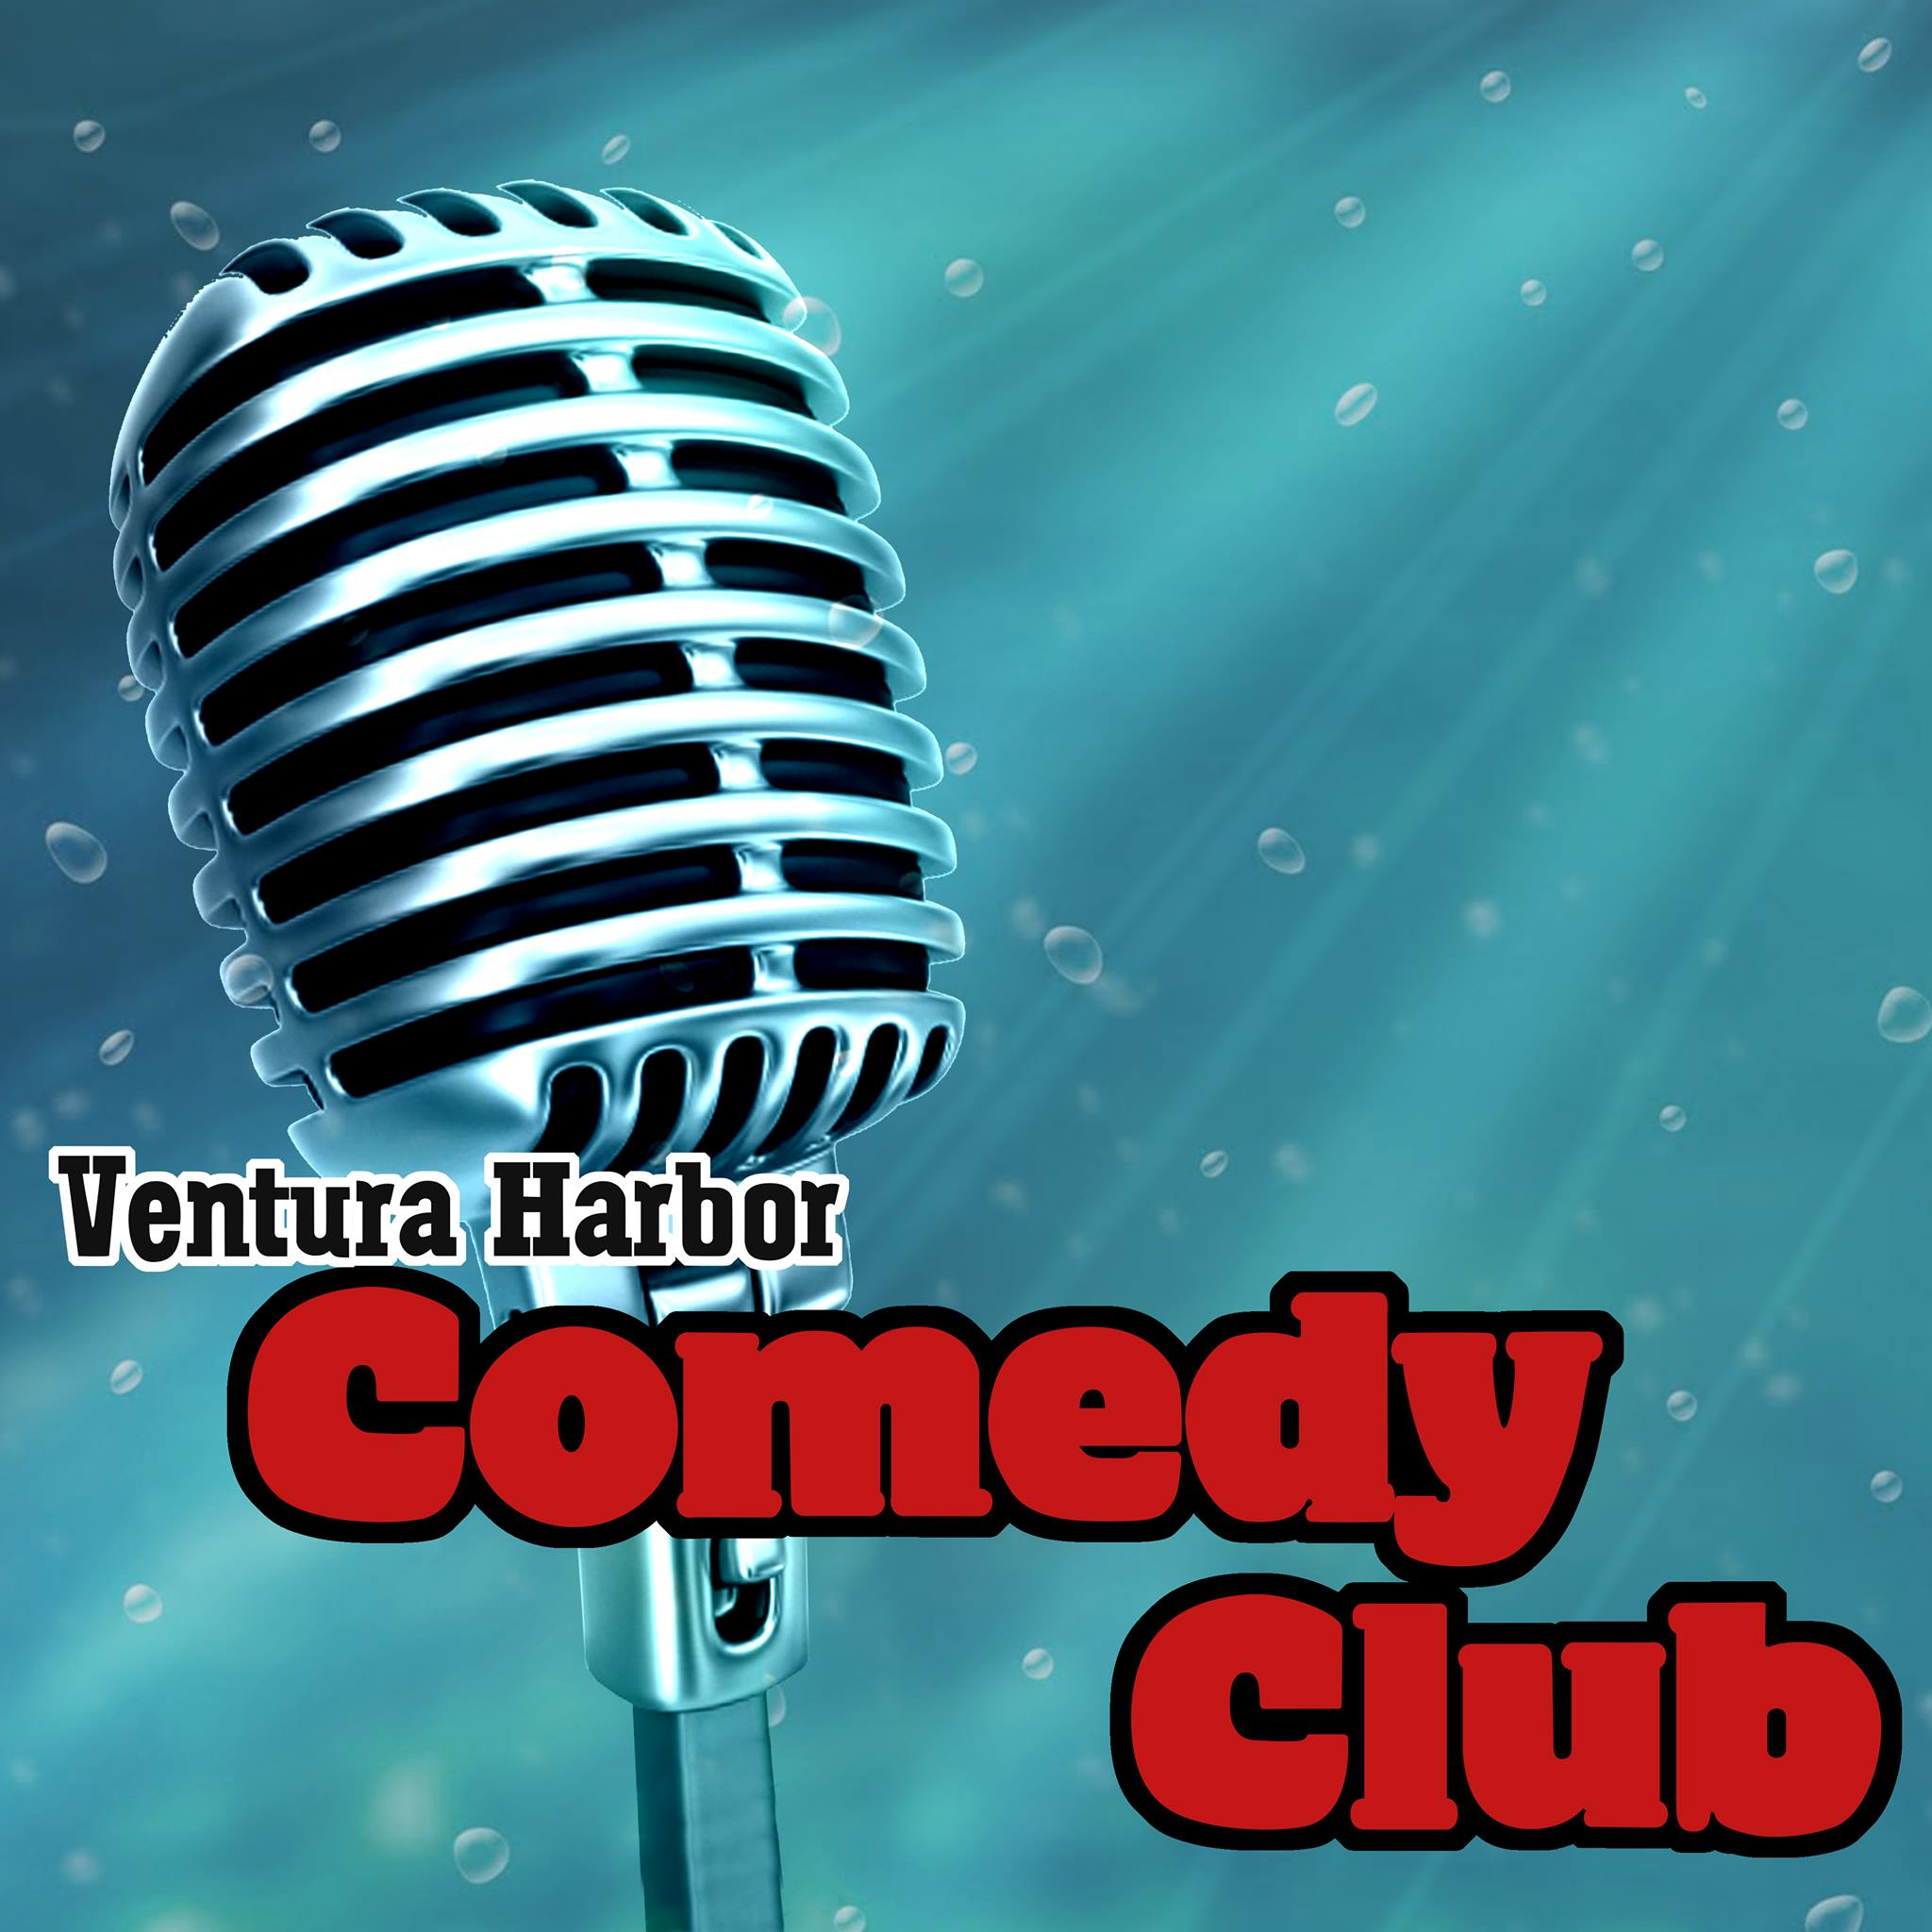 Ventura Harbor Comedy Club Ventura Harbor Village